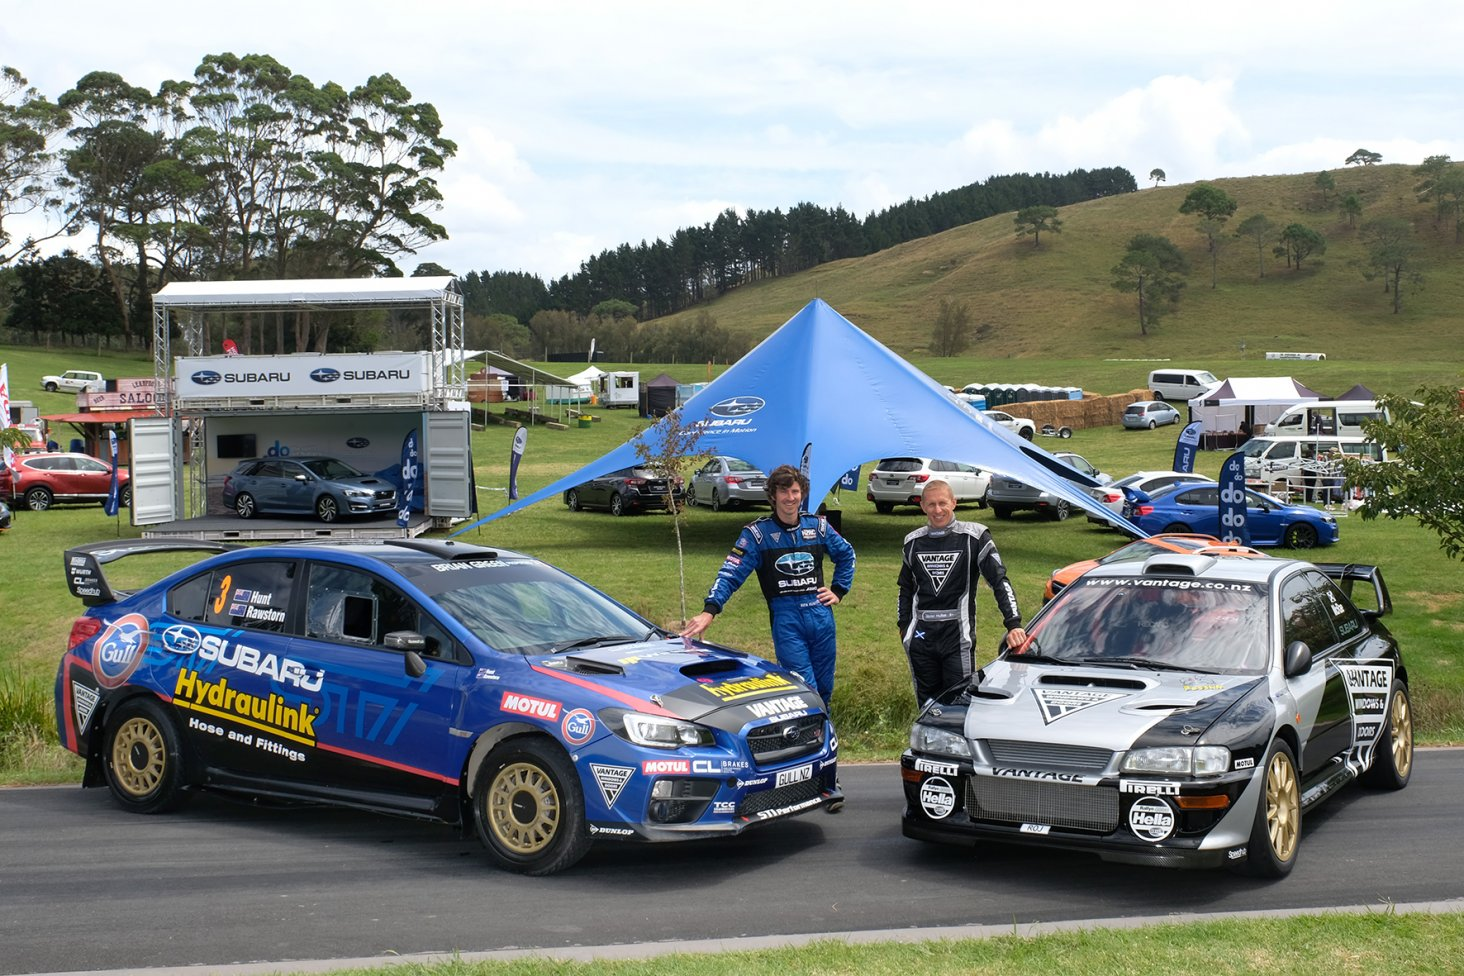 Subaru drivers Ben Hunt (left) with his Subaru WRX STi rally car and Alister McRae with the Vantage Motorsport Subaru. PHOTO: GEOFF RIDDER.